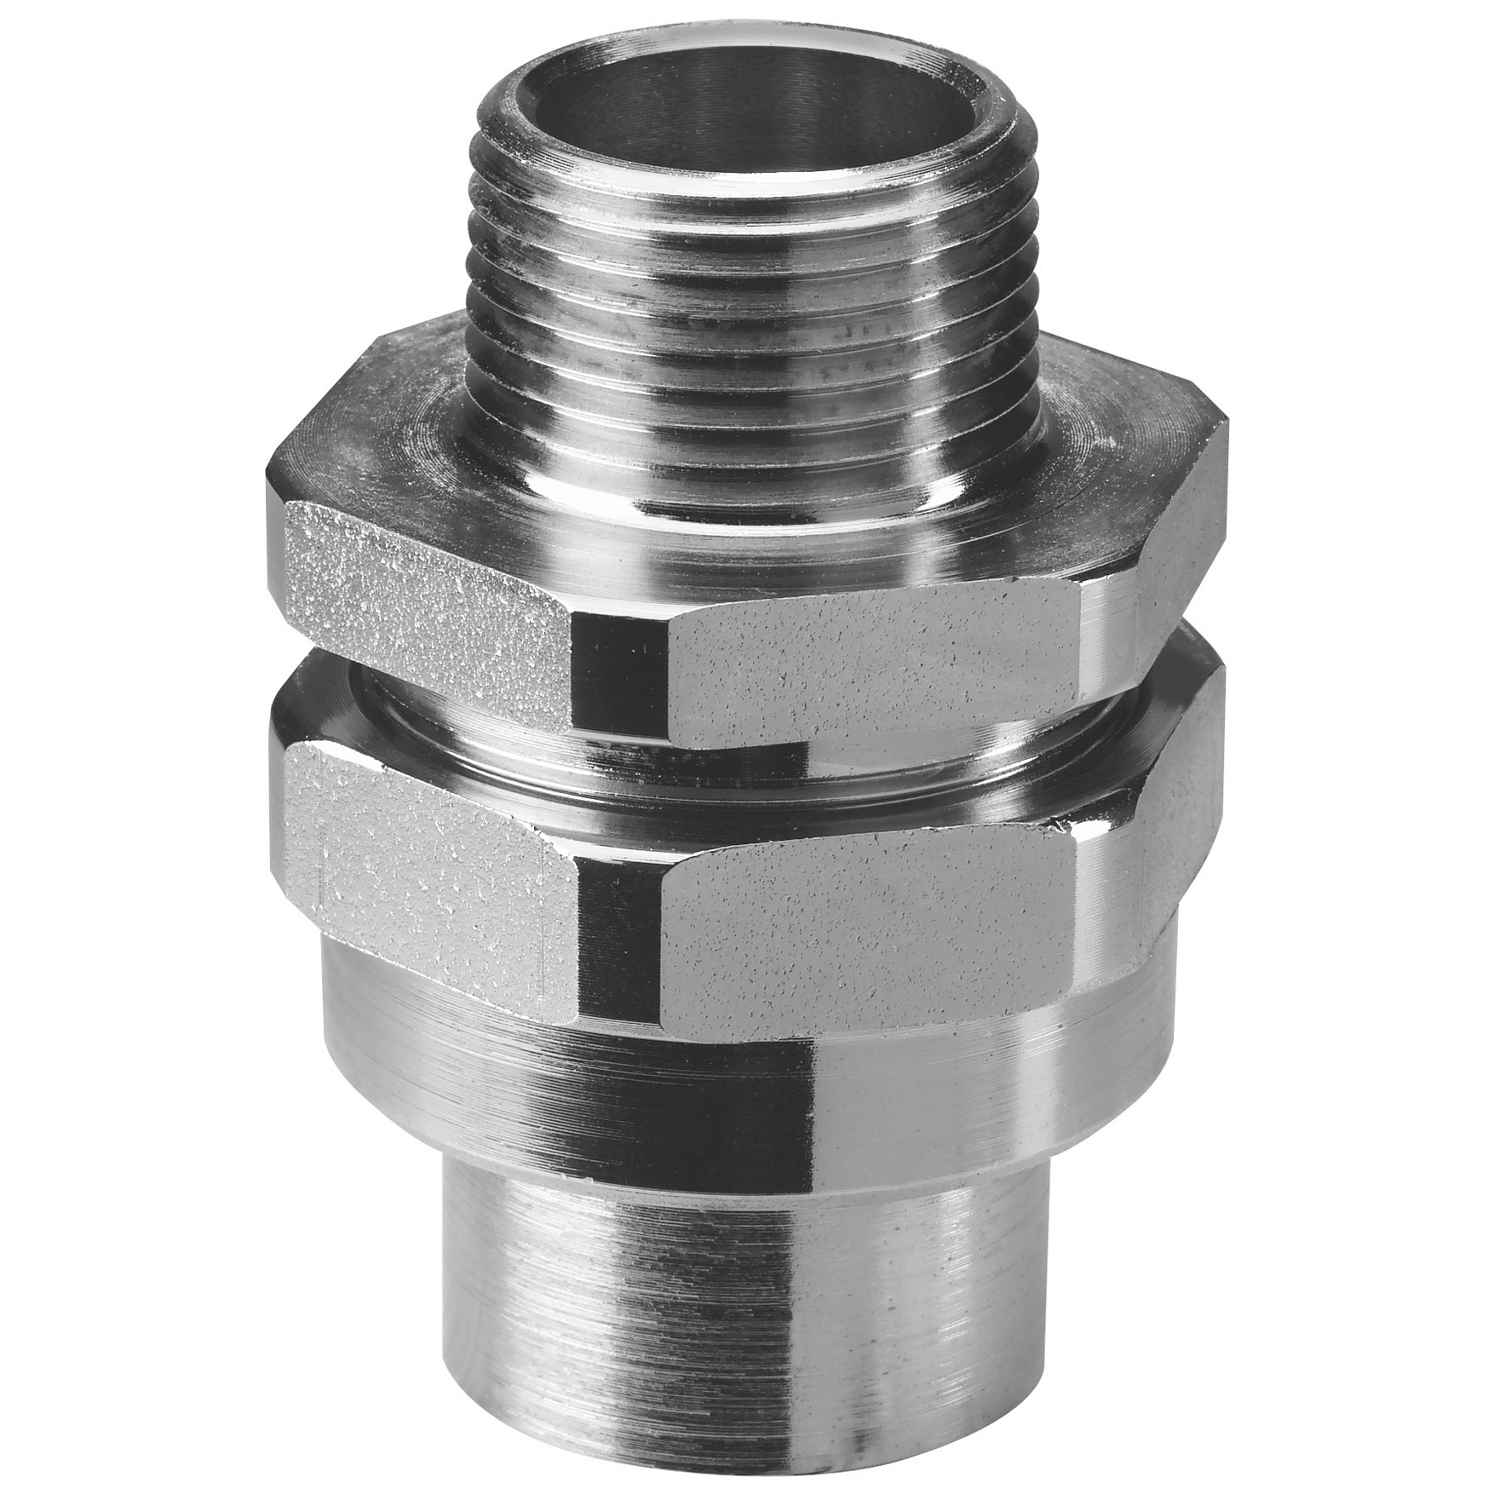 T&B Industrial Fitting,UNY-805-TB,T&B® UNY-805-TB 3-Piece Conduit Union, 3 in, Electrogalvanized Steel, Chromate